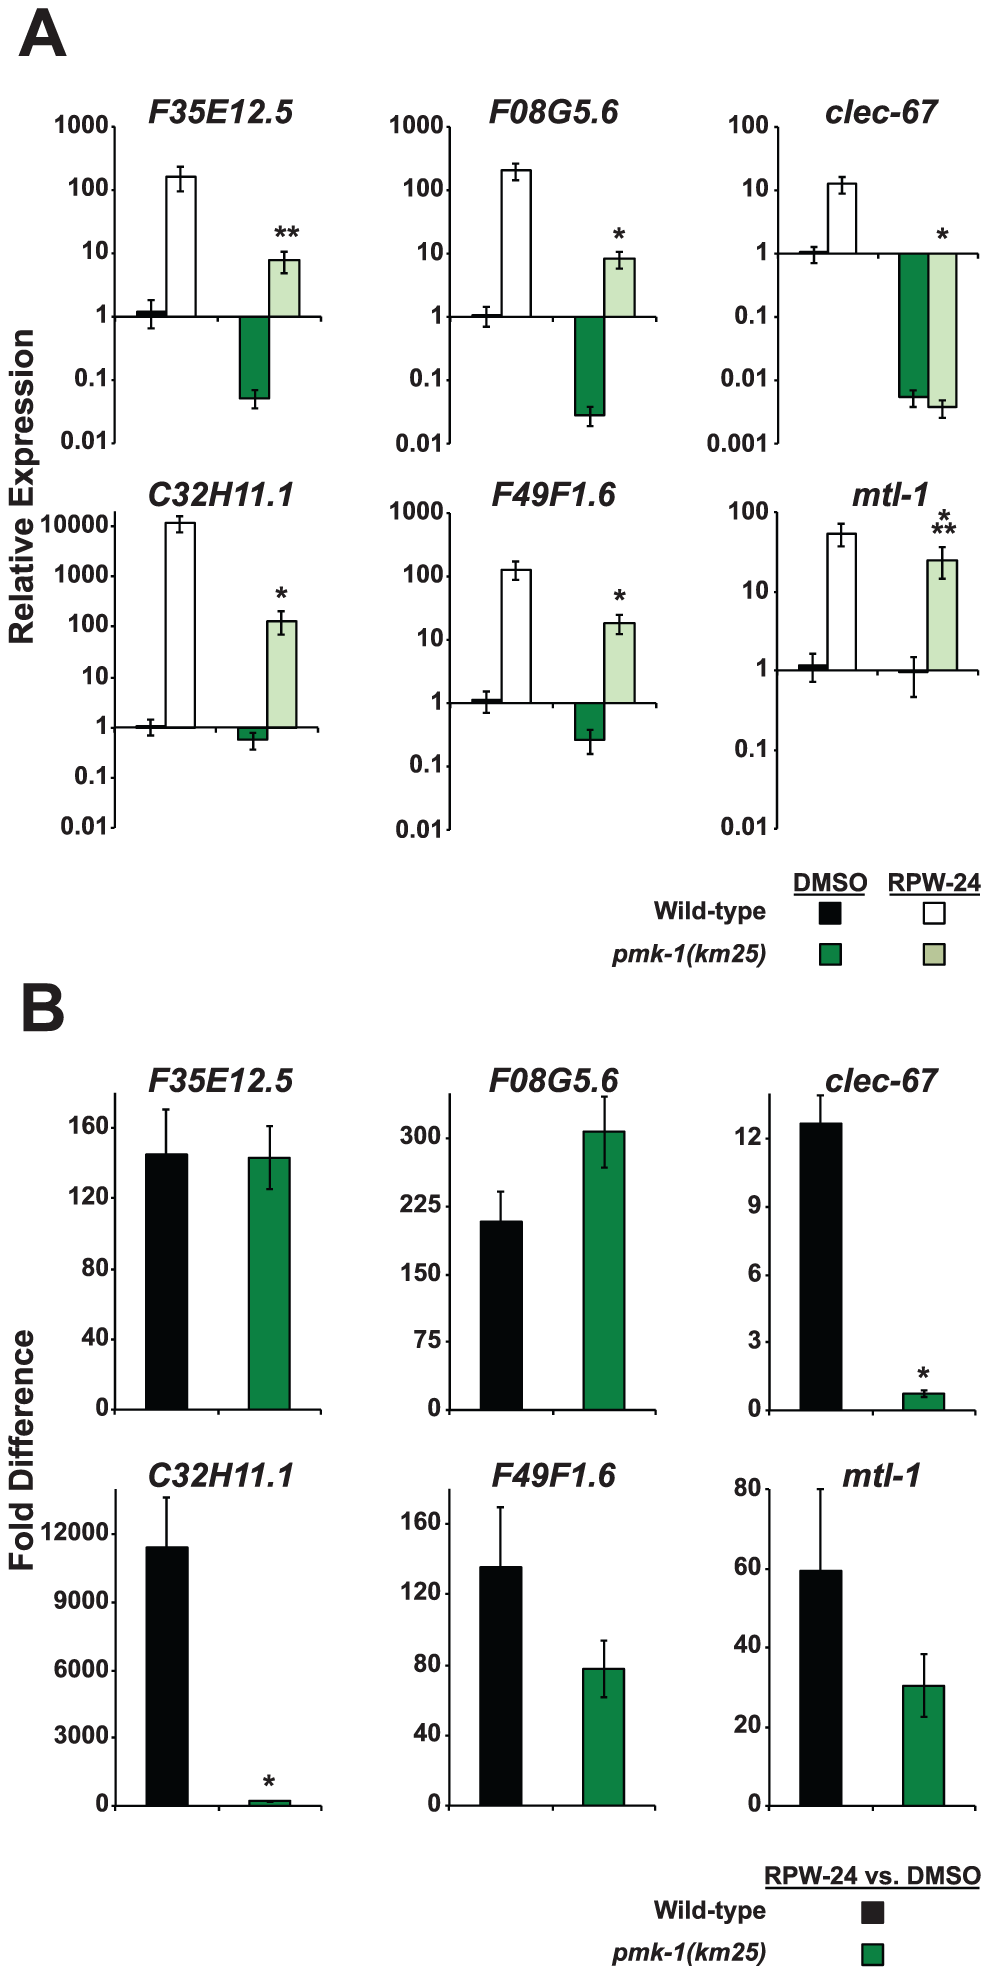 The expression levels of RPW-24–induced putative immune effectors are reduced in <i>pmk-1(km25)</i> mutants compared to wild-type animals.